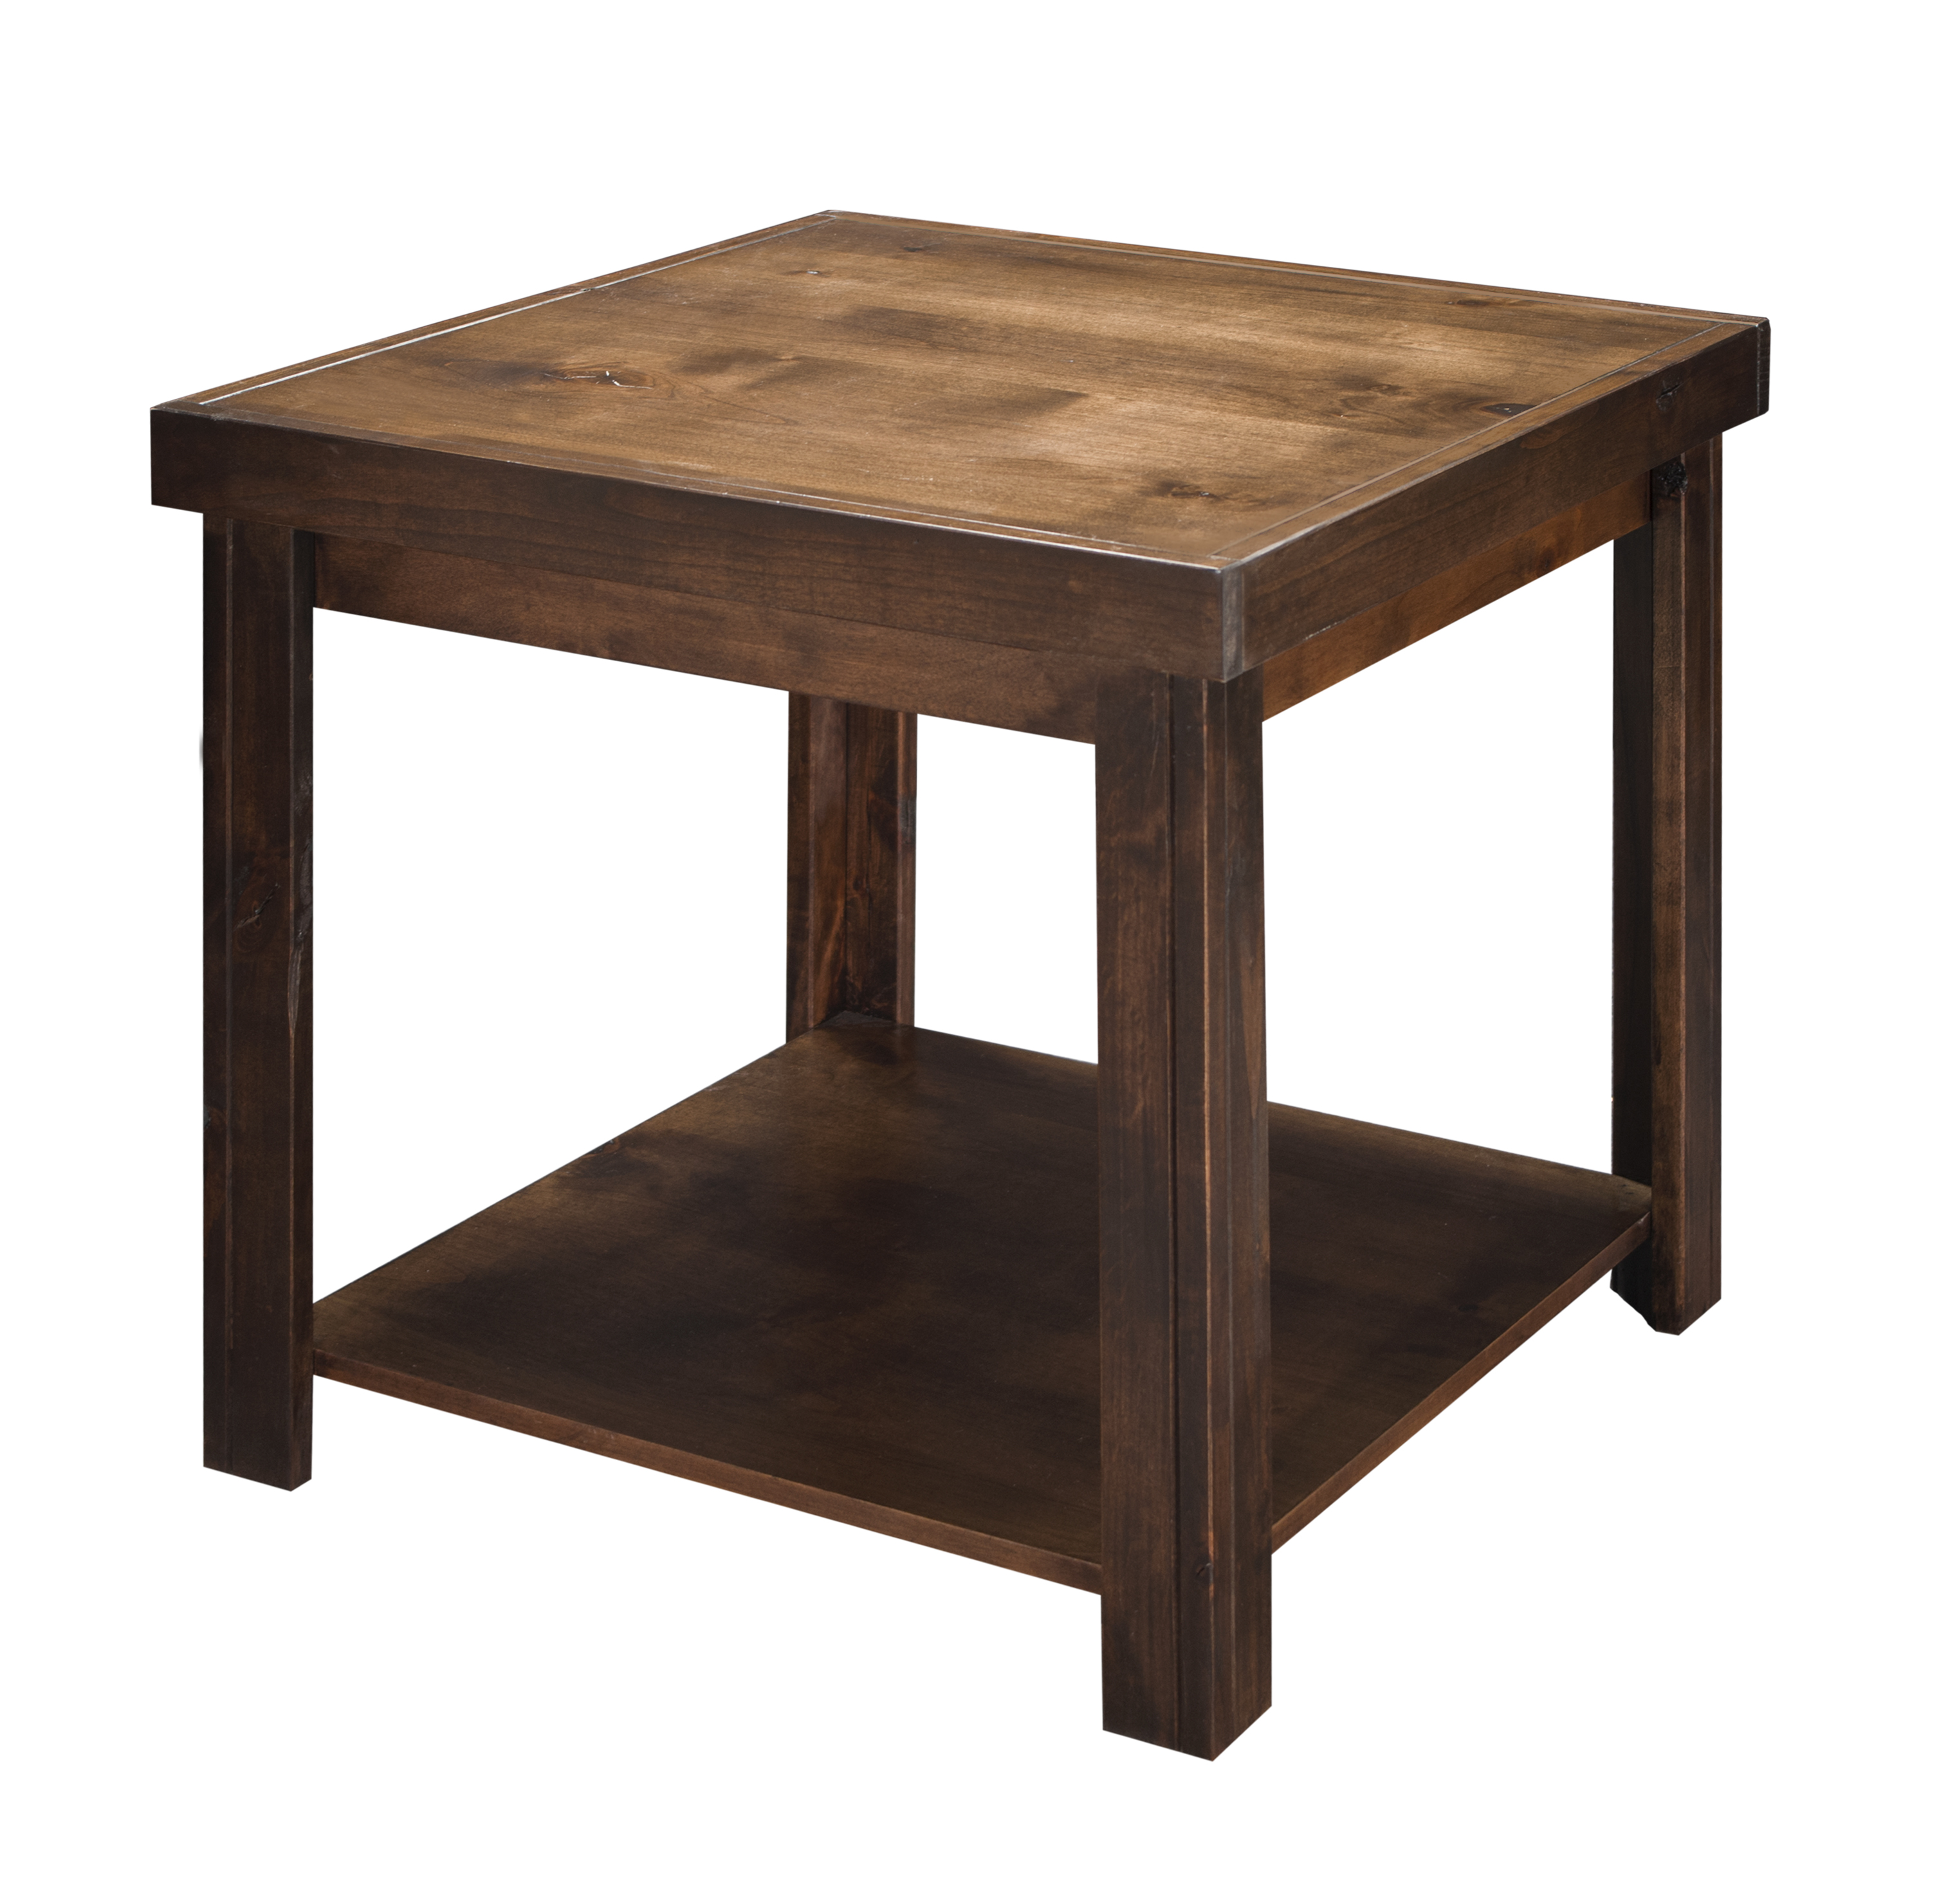 Legends Furniture Sausalito Collection End Table - Item Number: SL4110-WKY